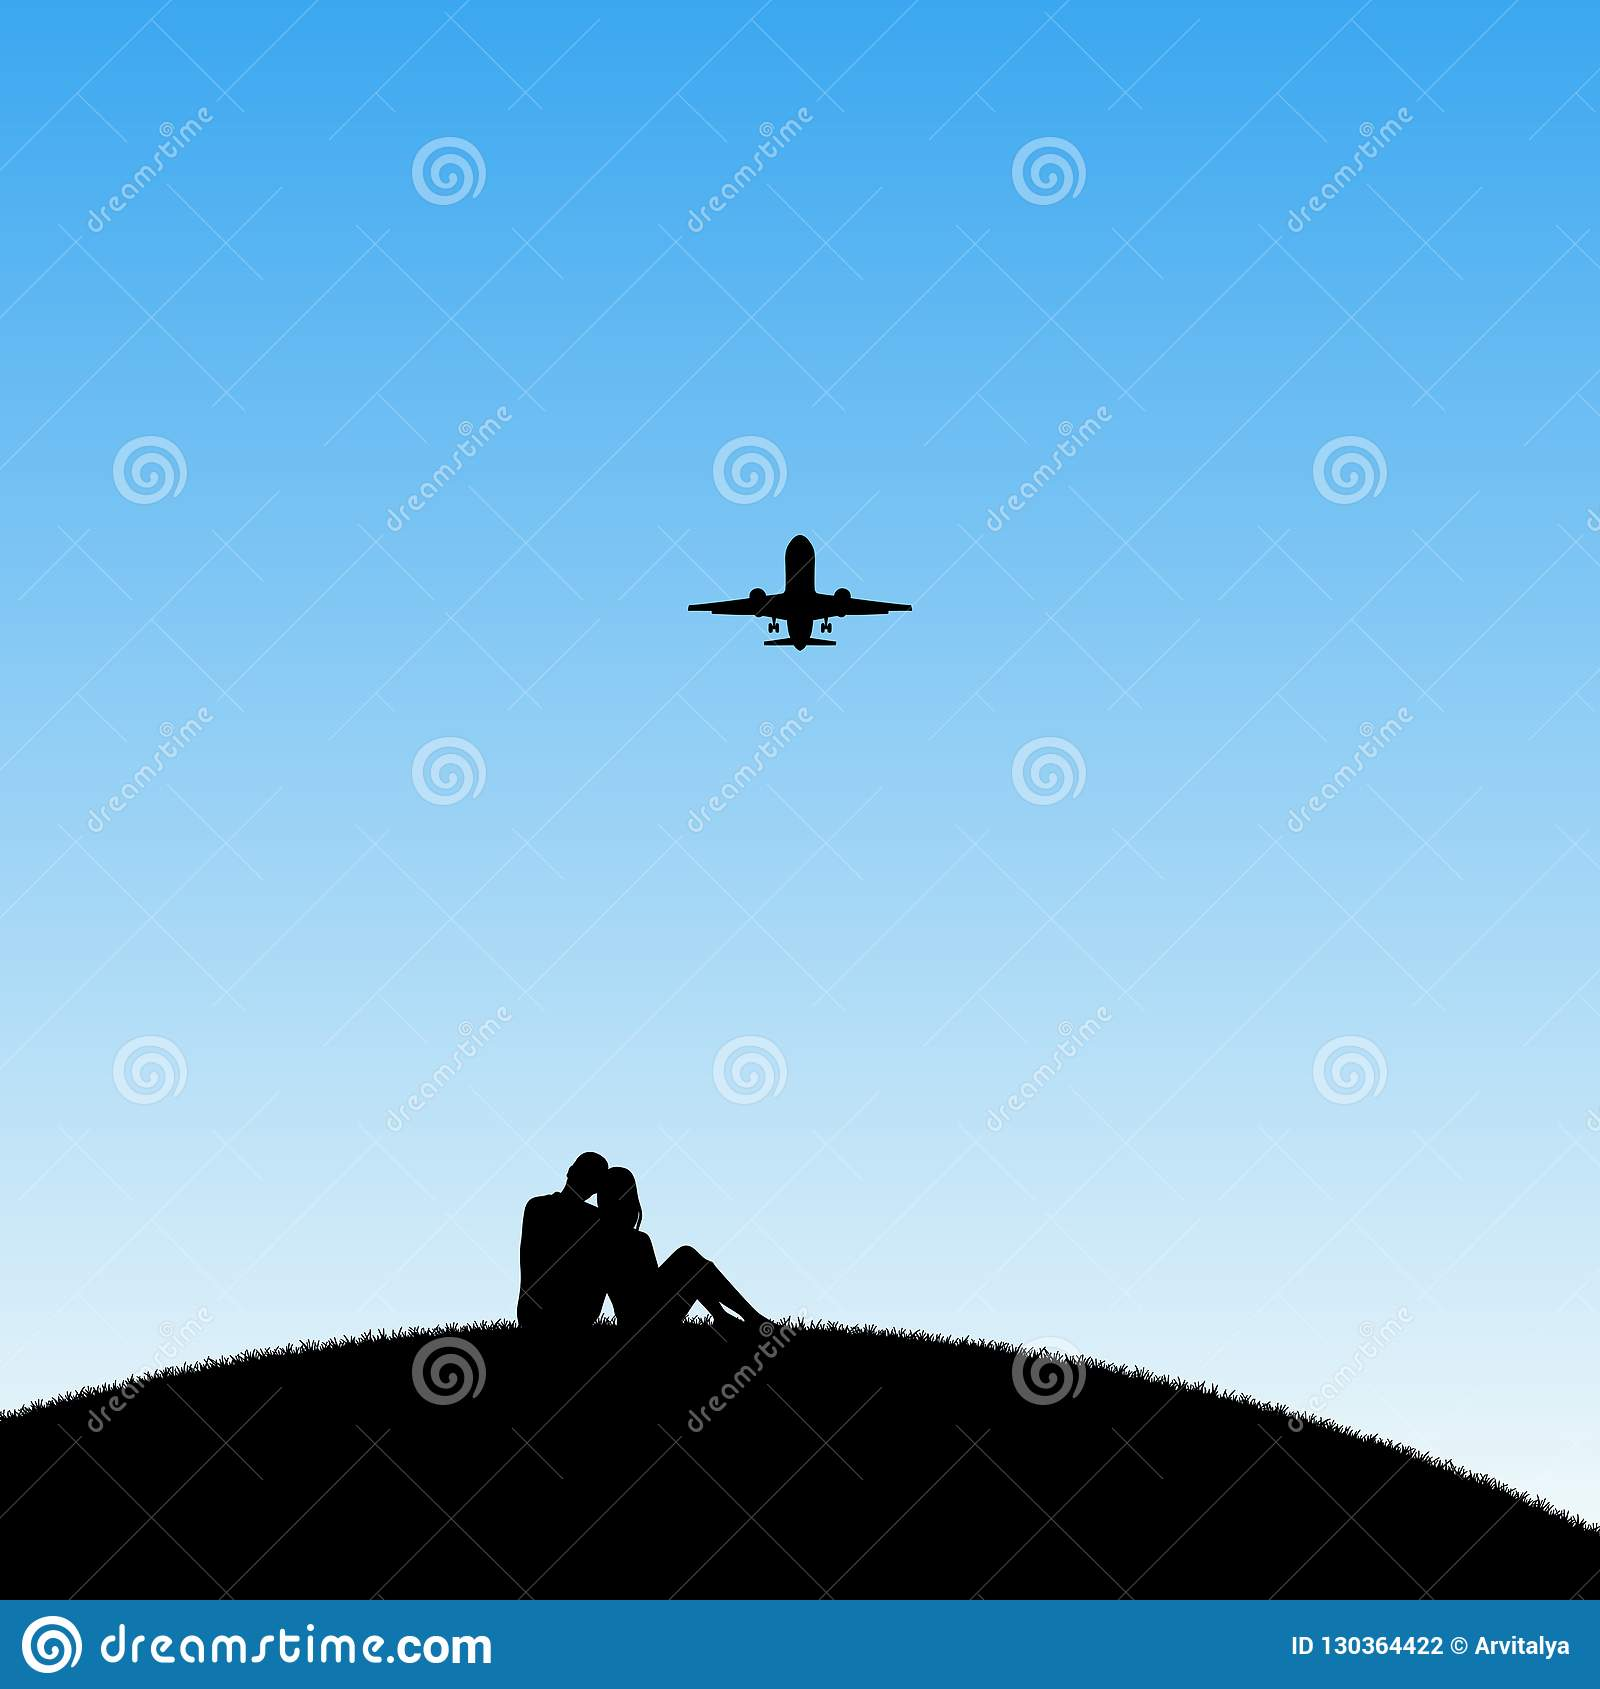 Lovers and flying aircraft in park